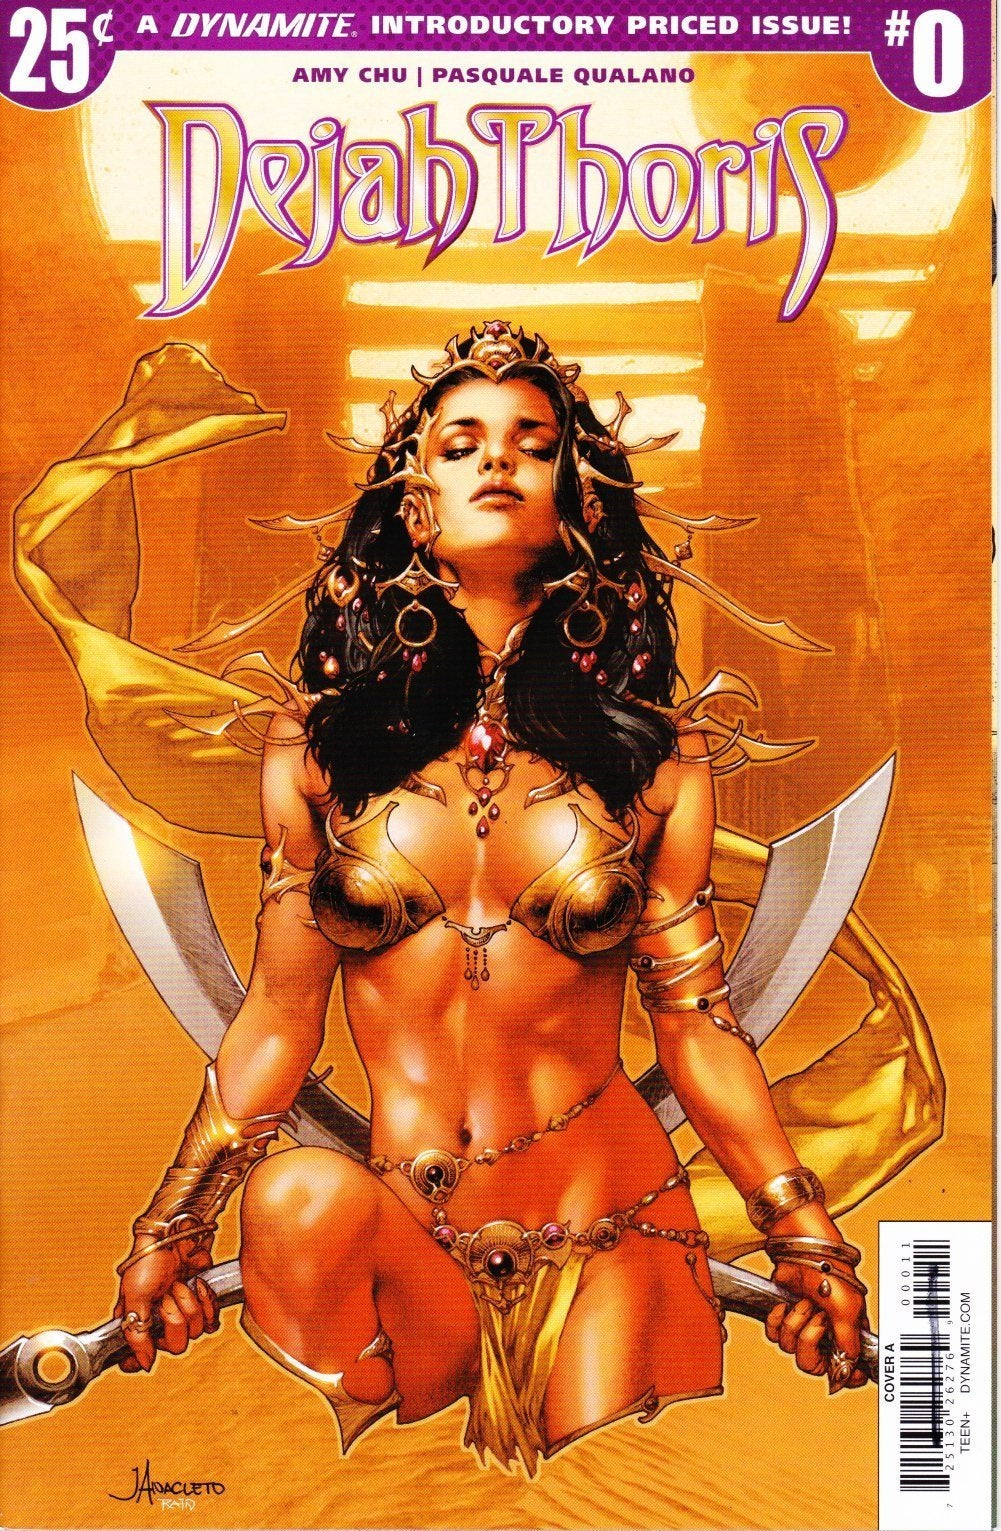 Dejah Thoris #0 Cover A January 2018 Dynamite Entertainment Grade VF/NM